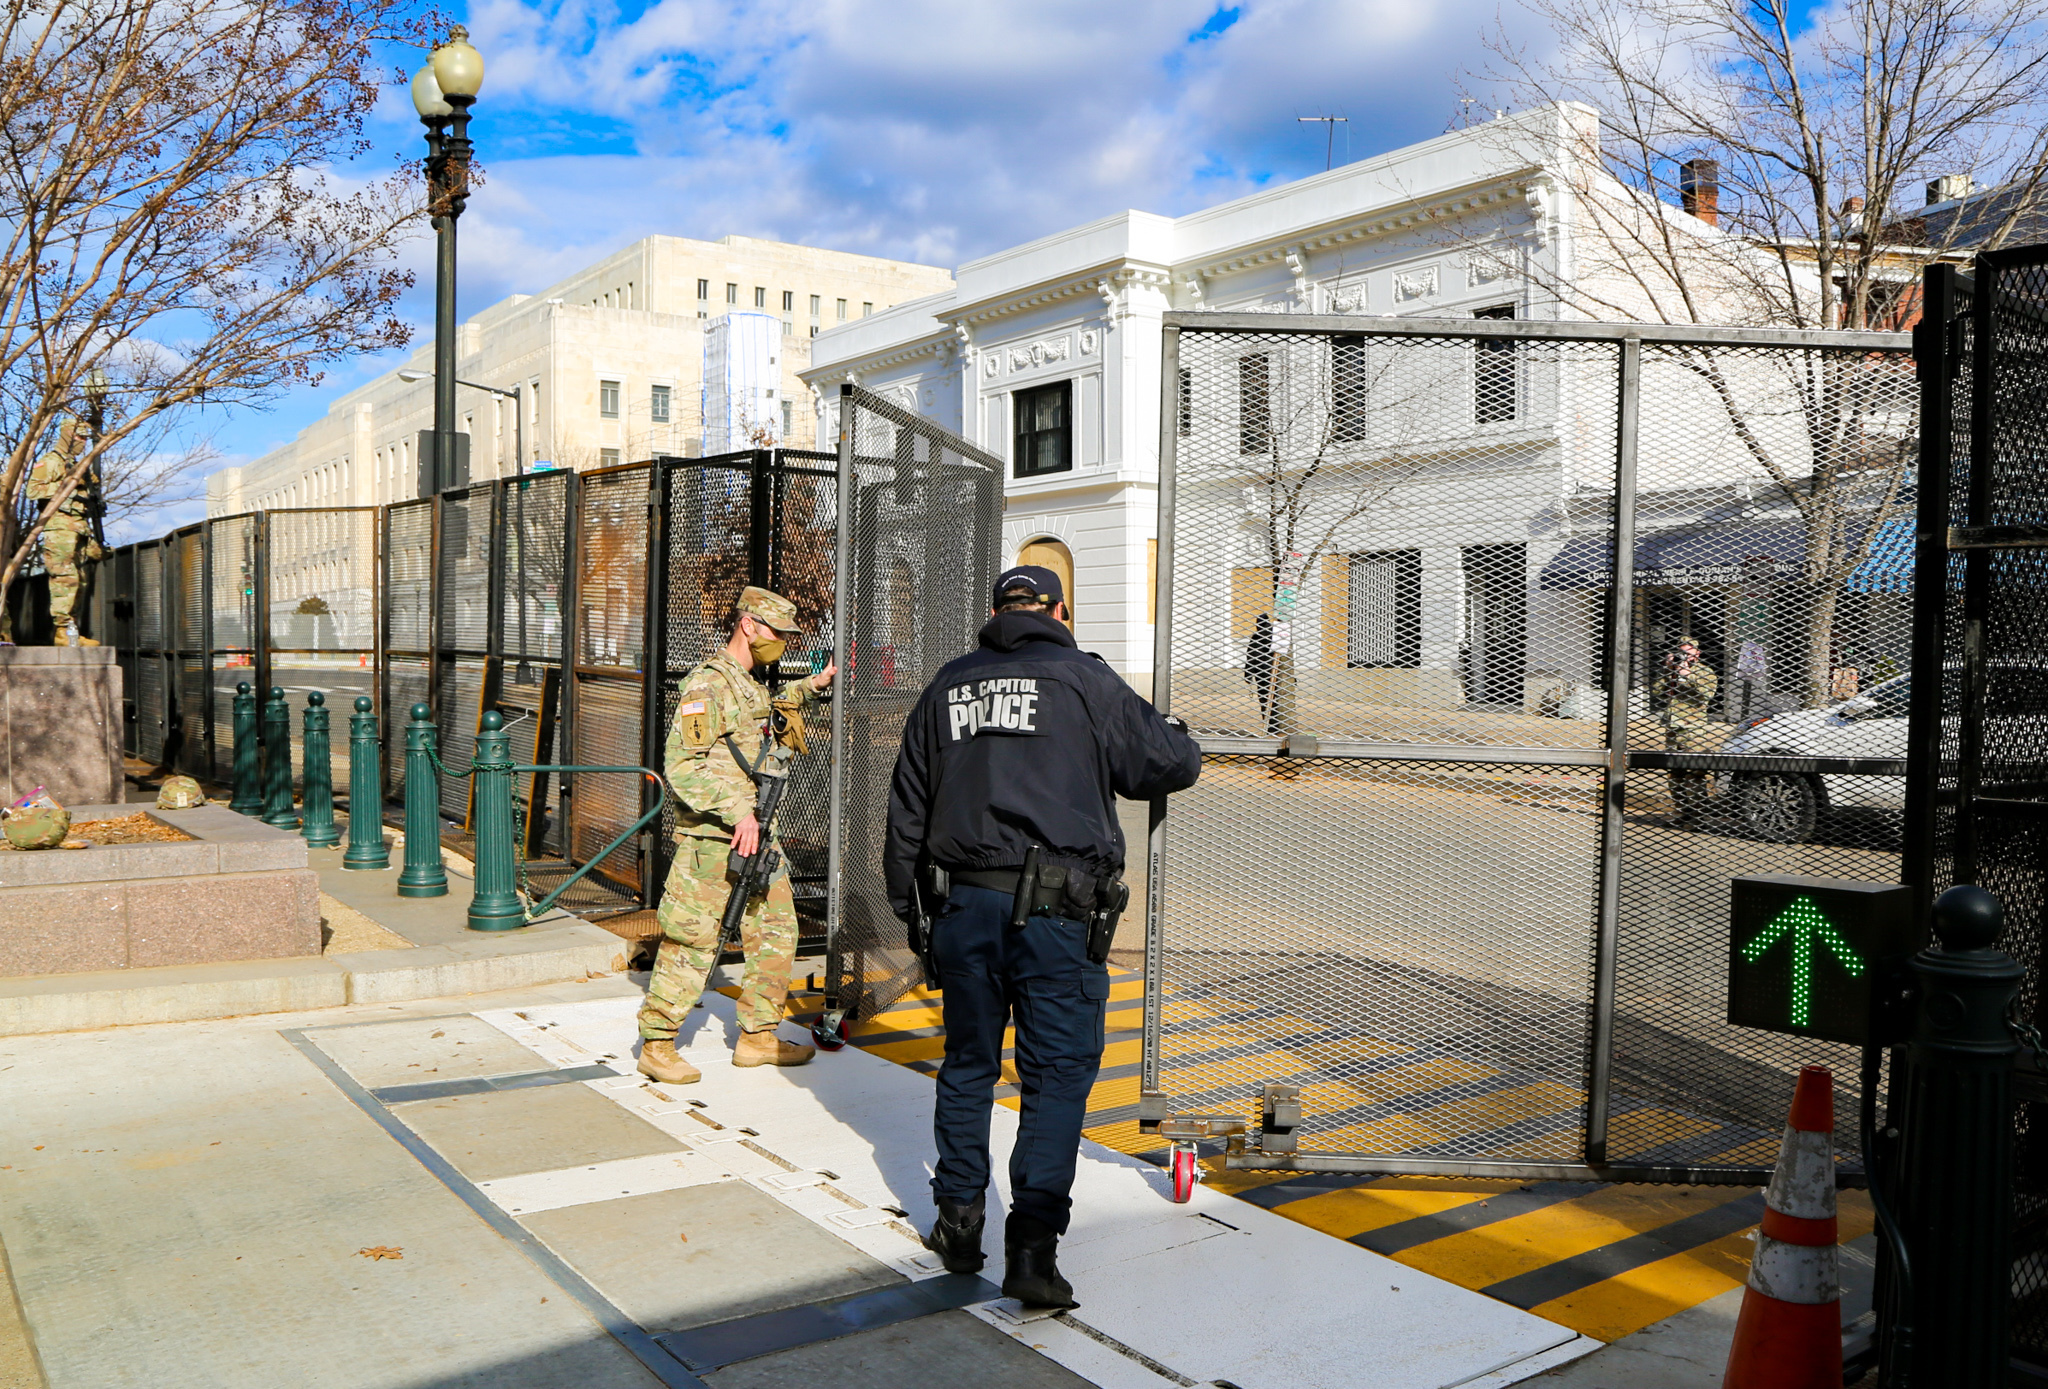 U.S. Soldiers with the Utah National Guard assists local authorities in securing a vehicle entry point, in Washington, D.C., Jan. 18, 2021. At least 25,000 National Guard men and women have been authorized to conduct security, communication and logistical missions in support of federal and District authorities leading up and through the 59th Presidential Inauguration. (U.S. Army National Guard photo by Spc. Christopher Hall)